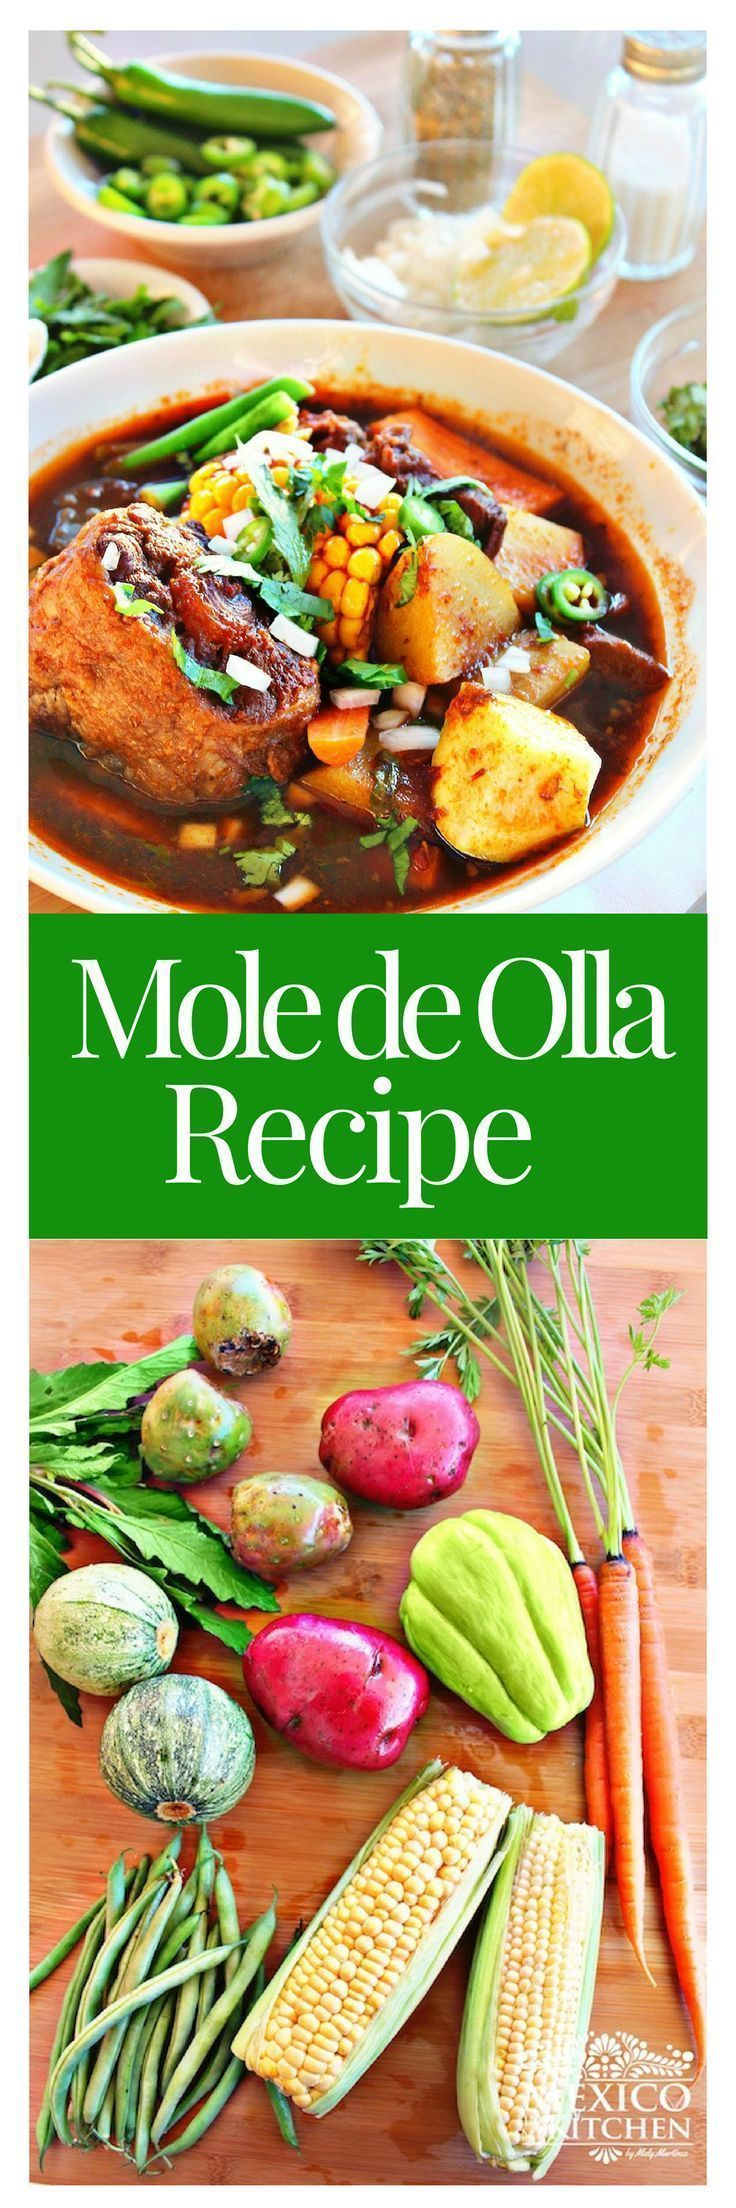 Mole de Olla recipe │ is a rich soup with a little bit of moleflavor. It has many variations across the country, but is mo#mexicanrecipes #mexicanfood #soups #mexicancuisine